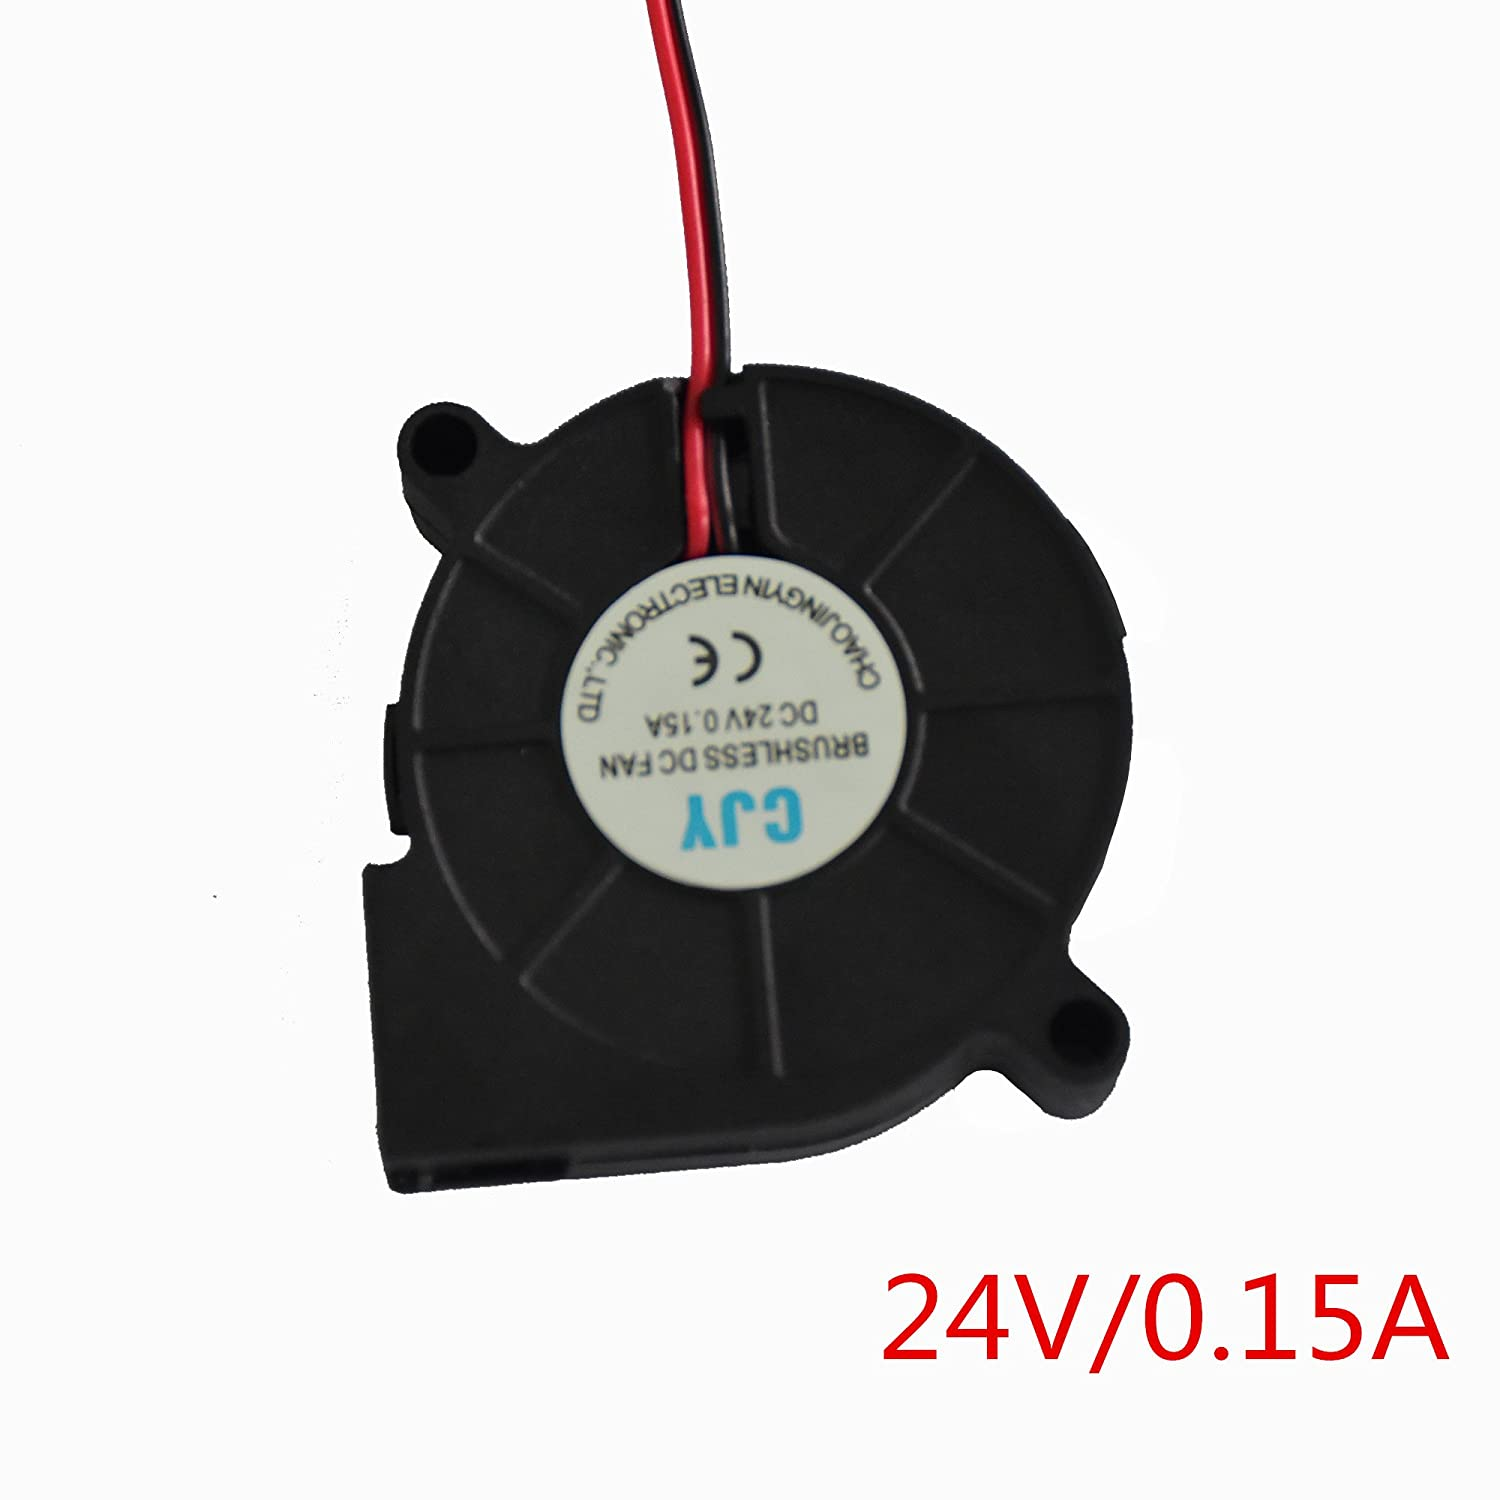 HICTOP DC 24V Connector Brushless Cooling Turbo Blower Fan 50x15mm Cooler 3D Printer Parts (2 Packs) HIC Technology 3DP AMZN- 10206